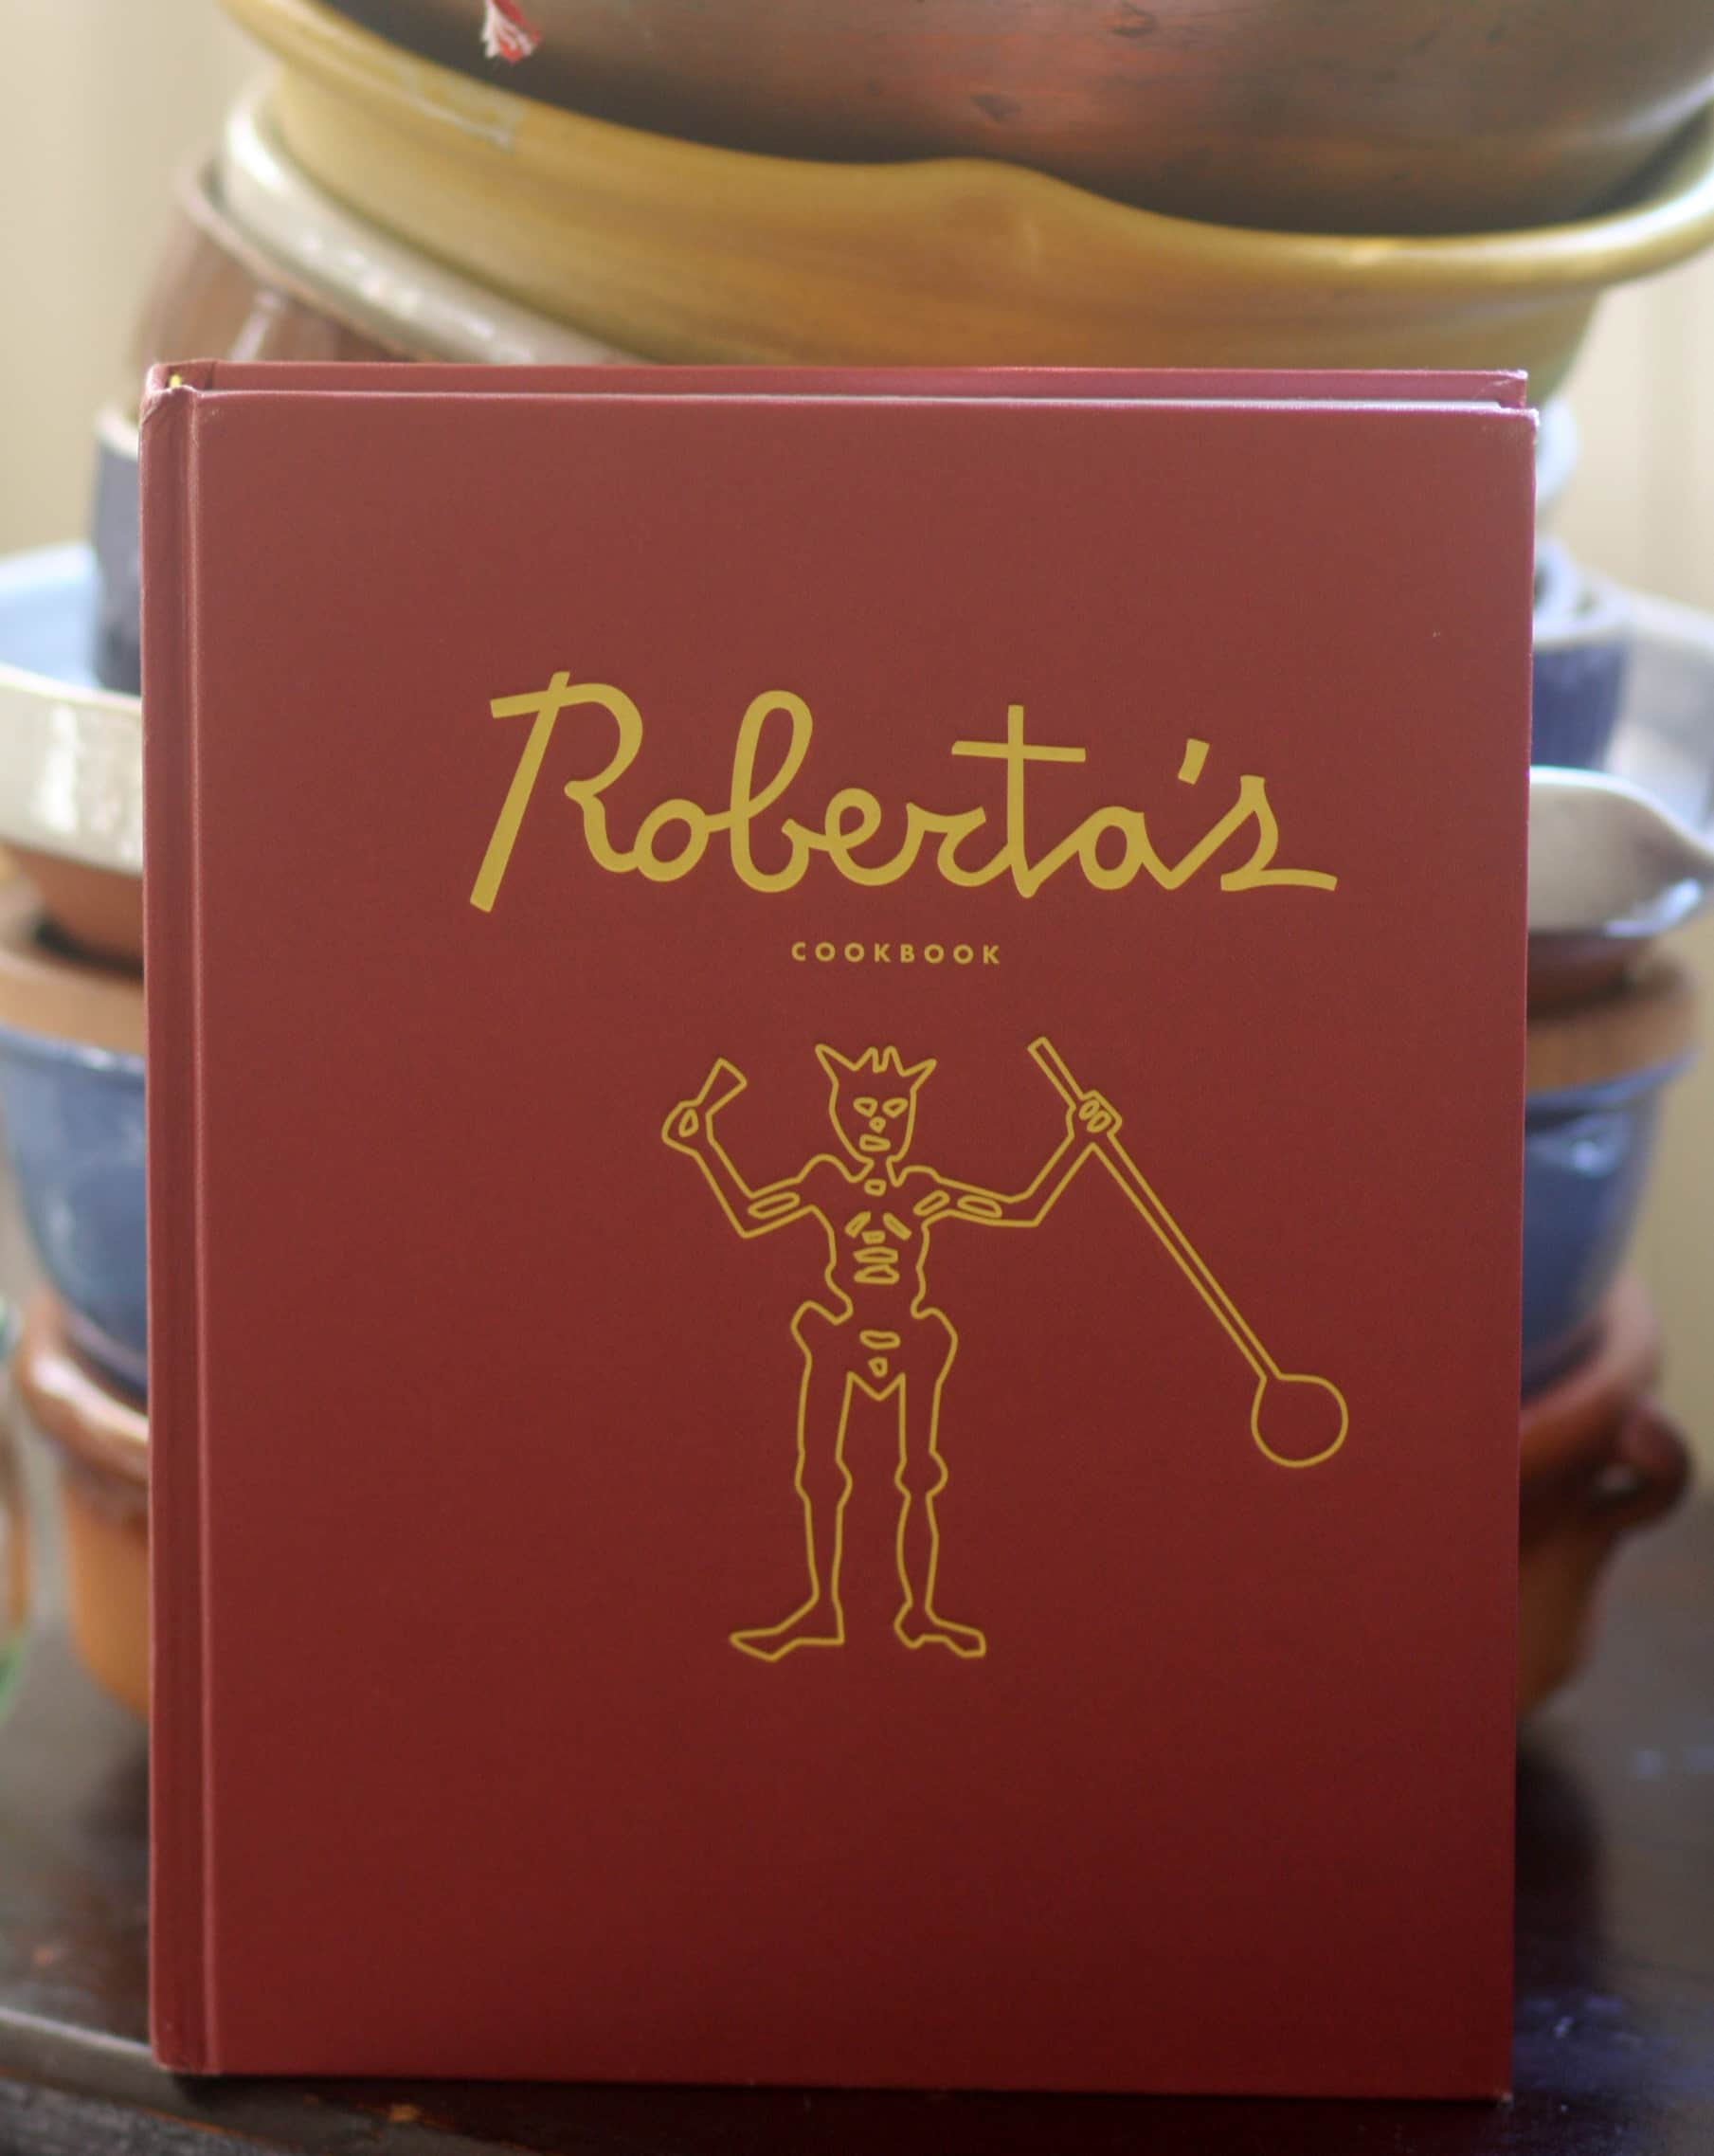 Roberta's Cookbook by Carlo Mirarchi, Brandon Hoy, Chris Parachini, and Katherine Wheelock: gallery image 1